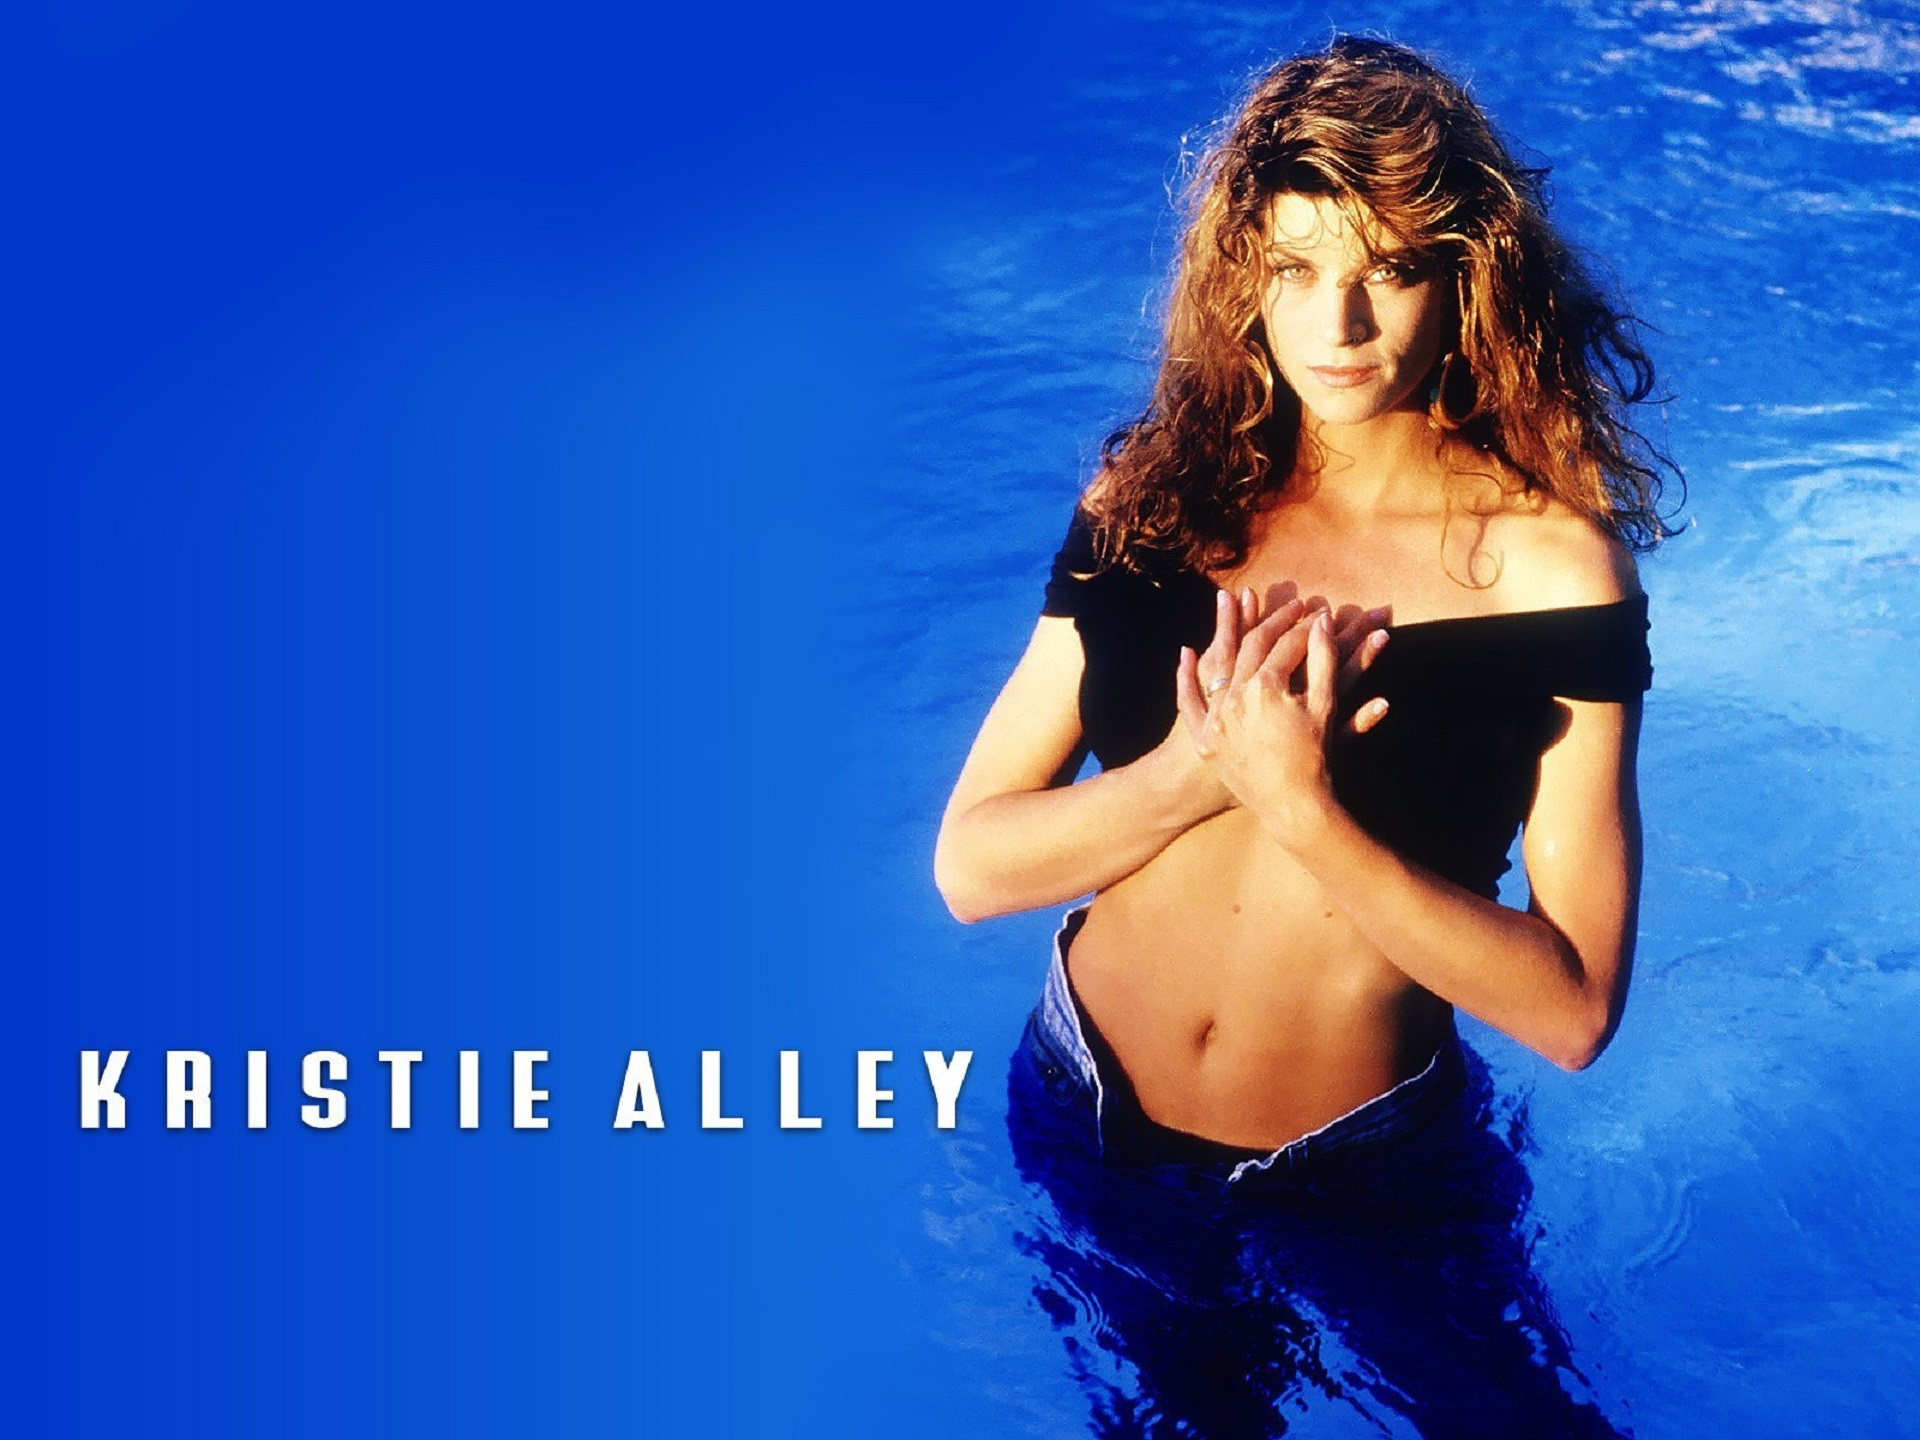 Nude pictures of kirstie alley